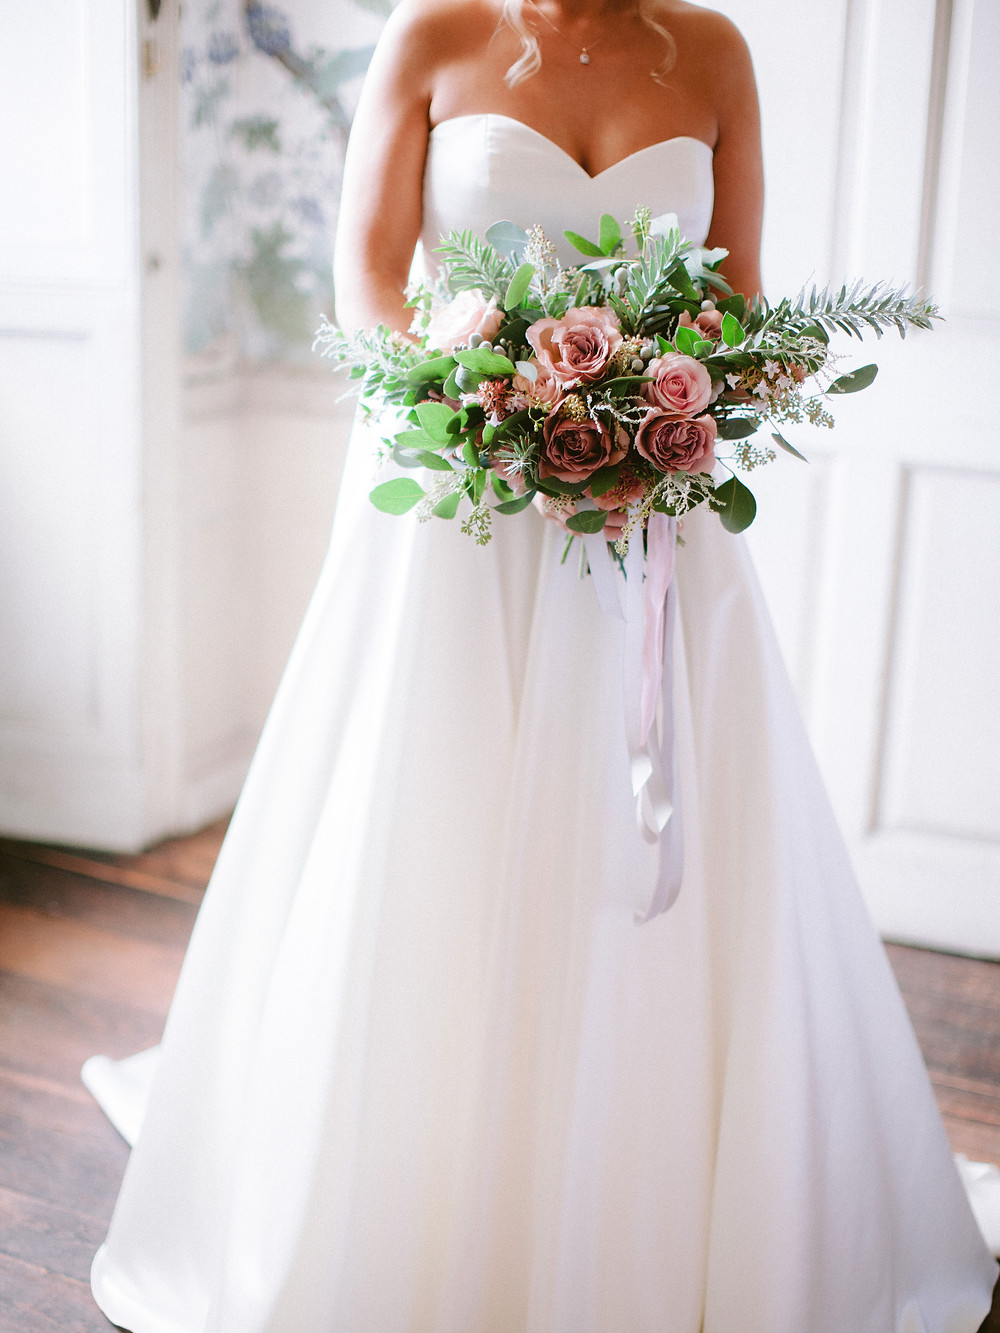 Bridal Bouquet - Dorset Wedding Florist - Martha and the Meadow